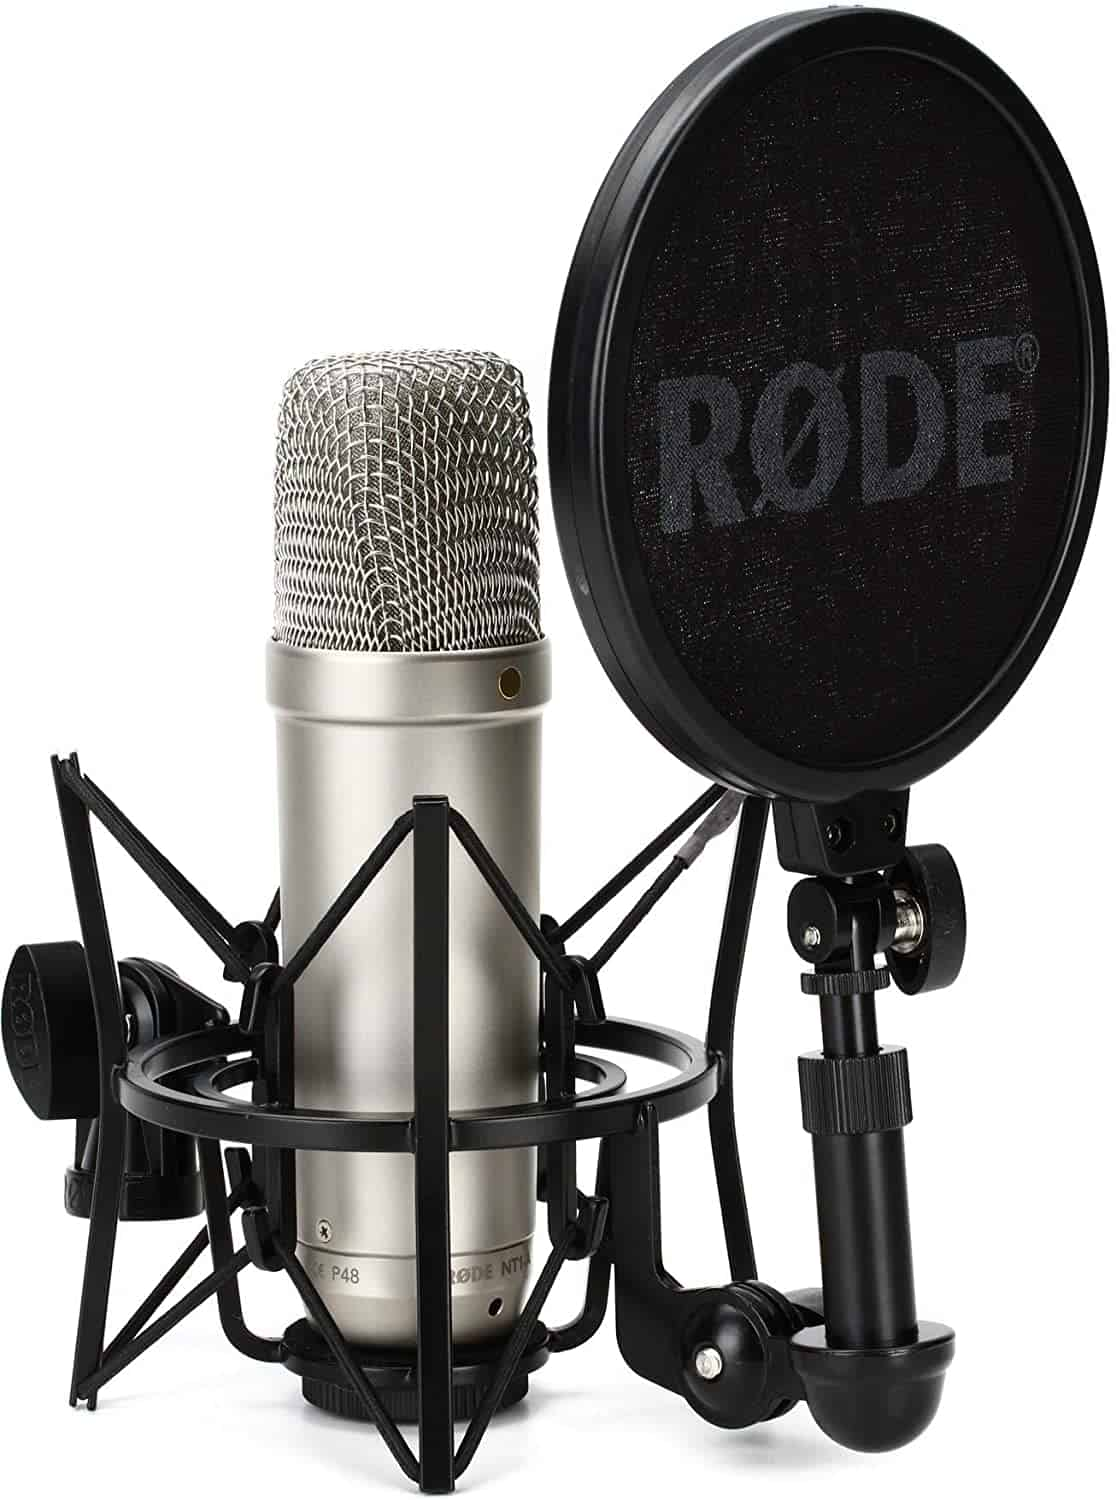 Best for room sound: Rode NT1 Condenser Microphone